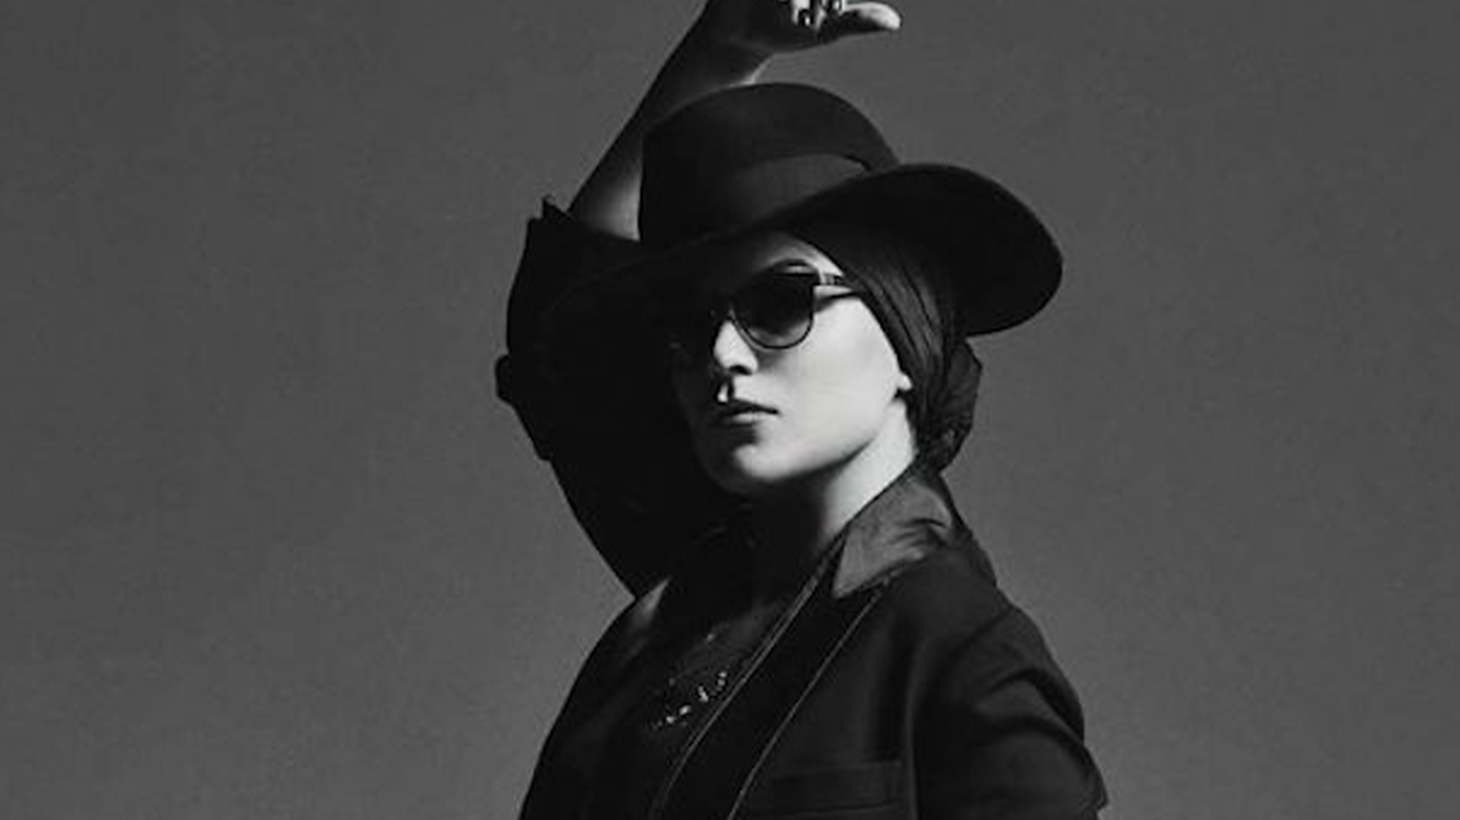 This week RP showcases new albums from Melody Gardot, Maria Bethânia, Cesaria Evora, Wes Montgomery, Bobo Stenson, and more.